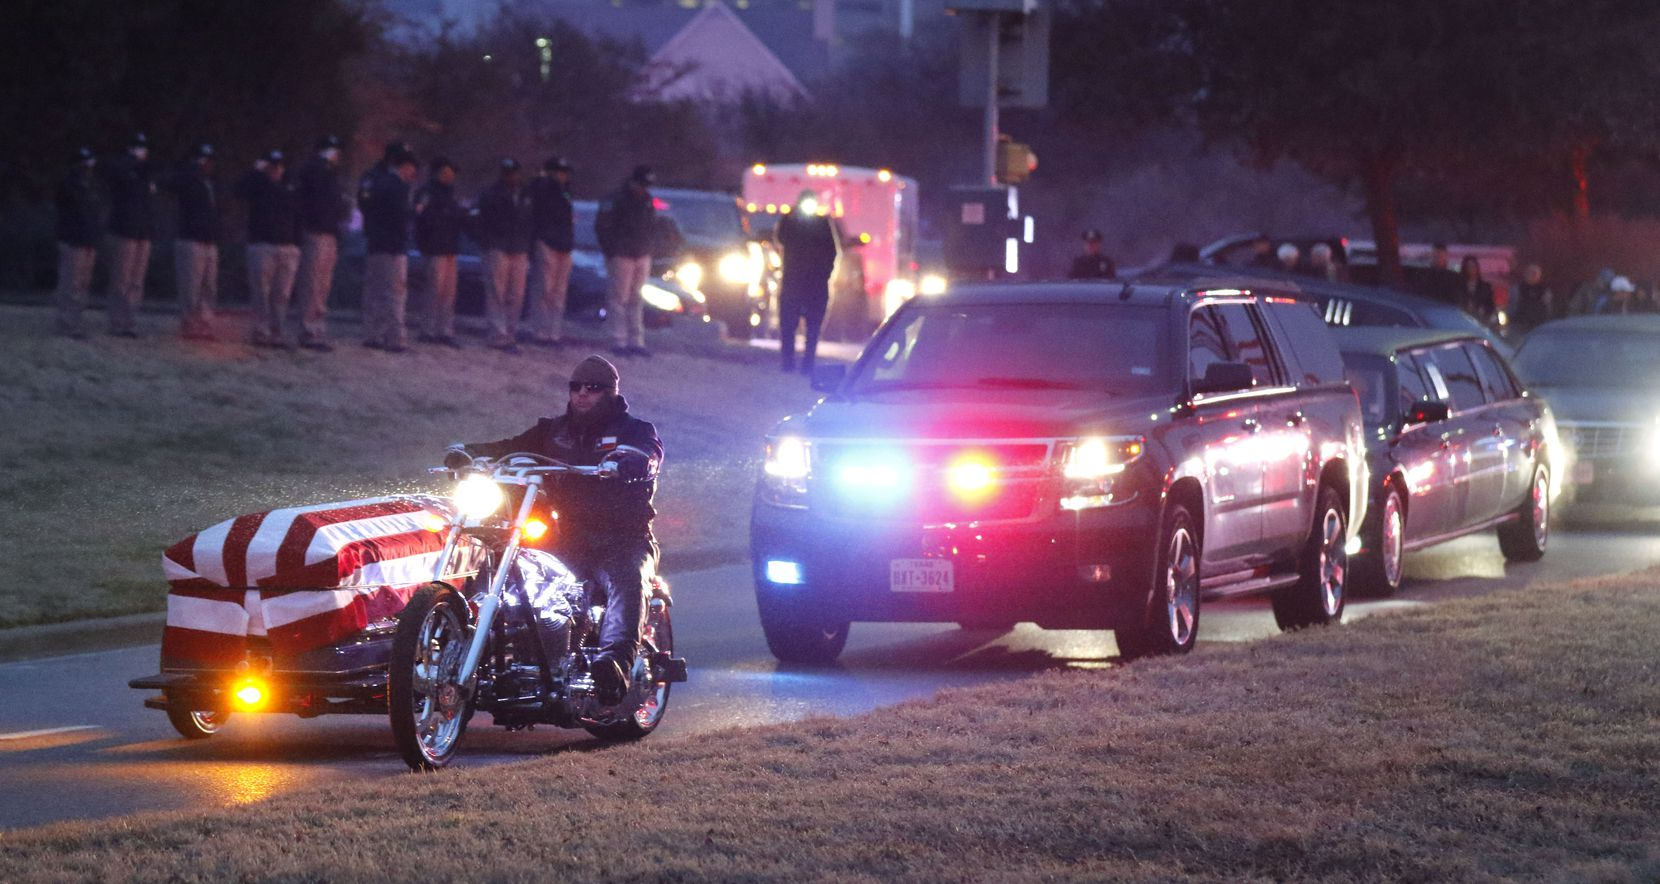 Law enforcement officers salute as a motorcycle carrying Richardson police officer David Sherrard after his funeral at Watermark Community Church in Dallas, Texas, Tuesday, February 13, 2018.